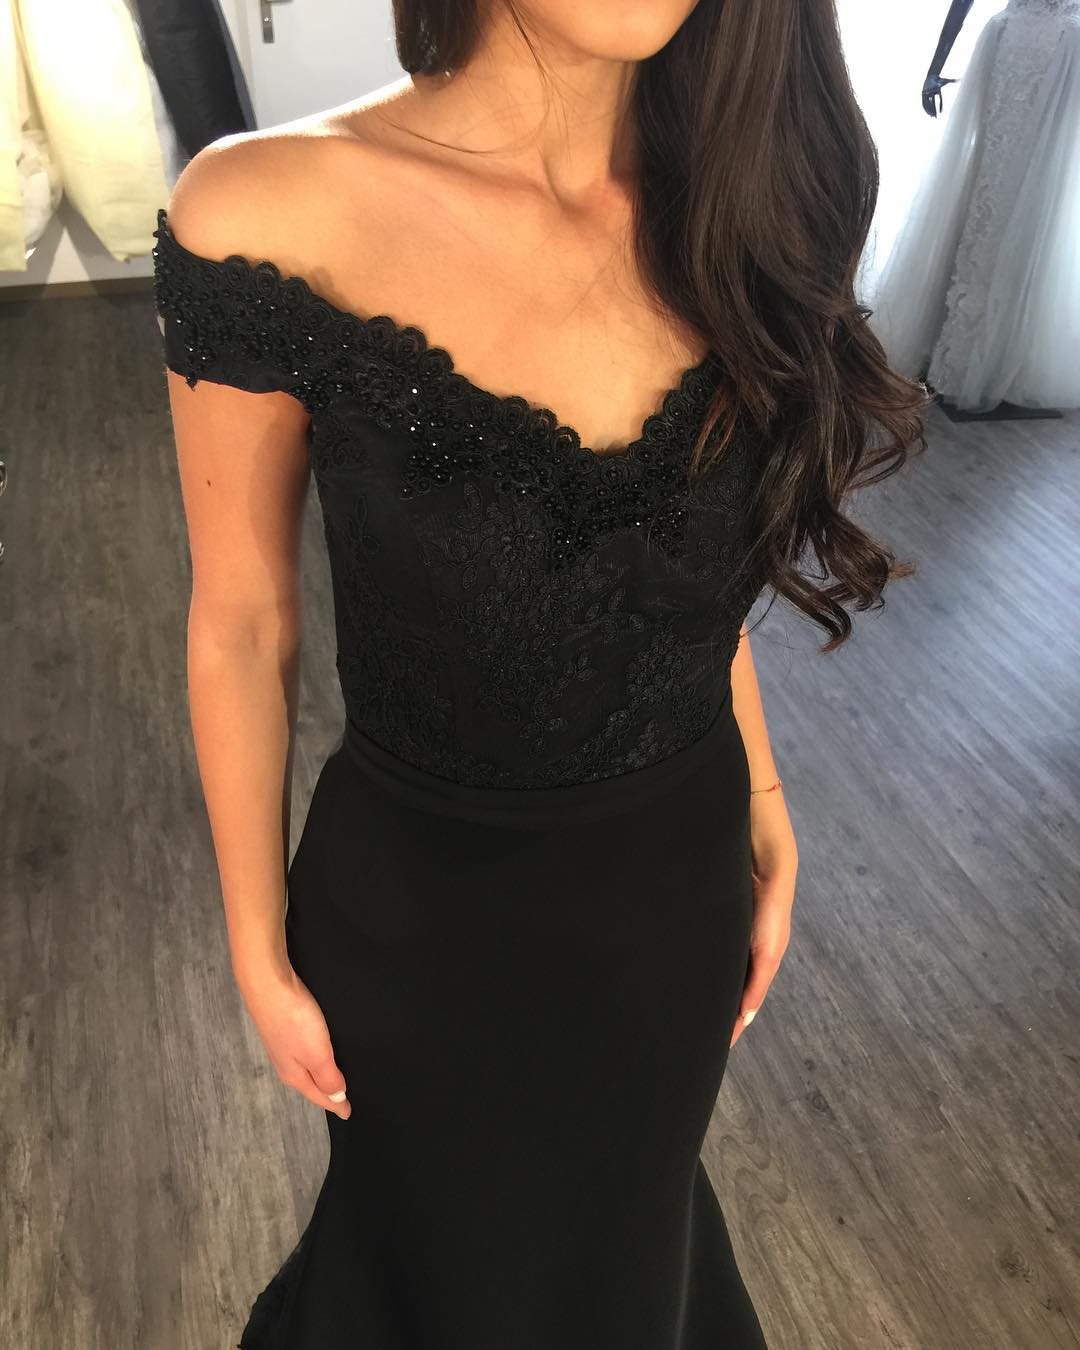 a510ac2d65e88 Elegant Mermaid Bridesmaid Dresses 2018 Vintage Beading Black Lace  Appliques Off Shoulder Long Bridesmaid Dress Sweep Train Evening Party  Gowns,Sexy Black ...